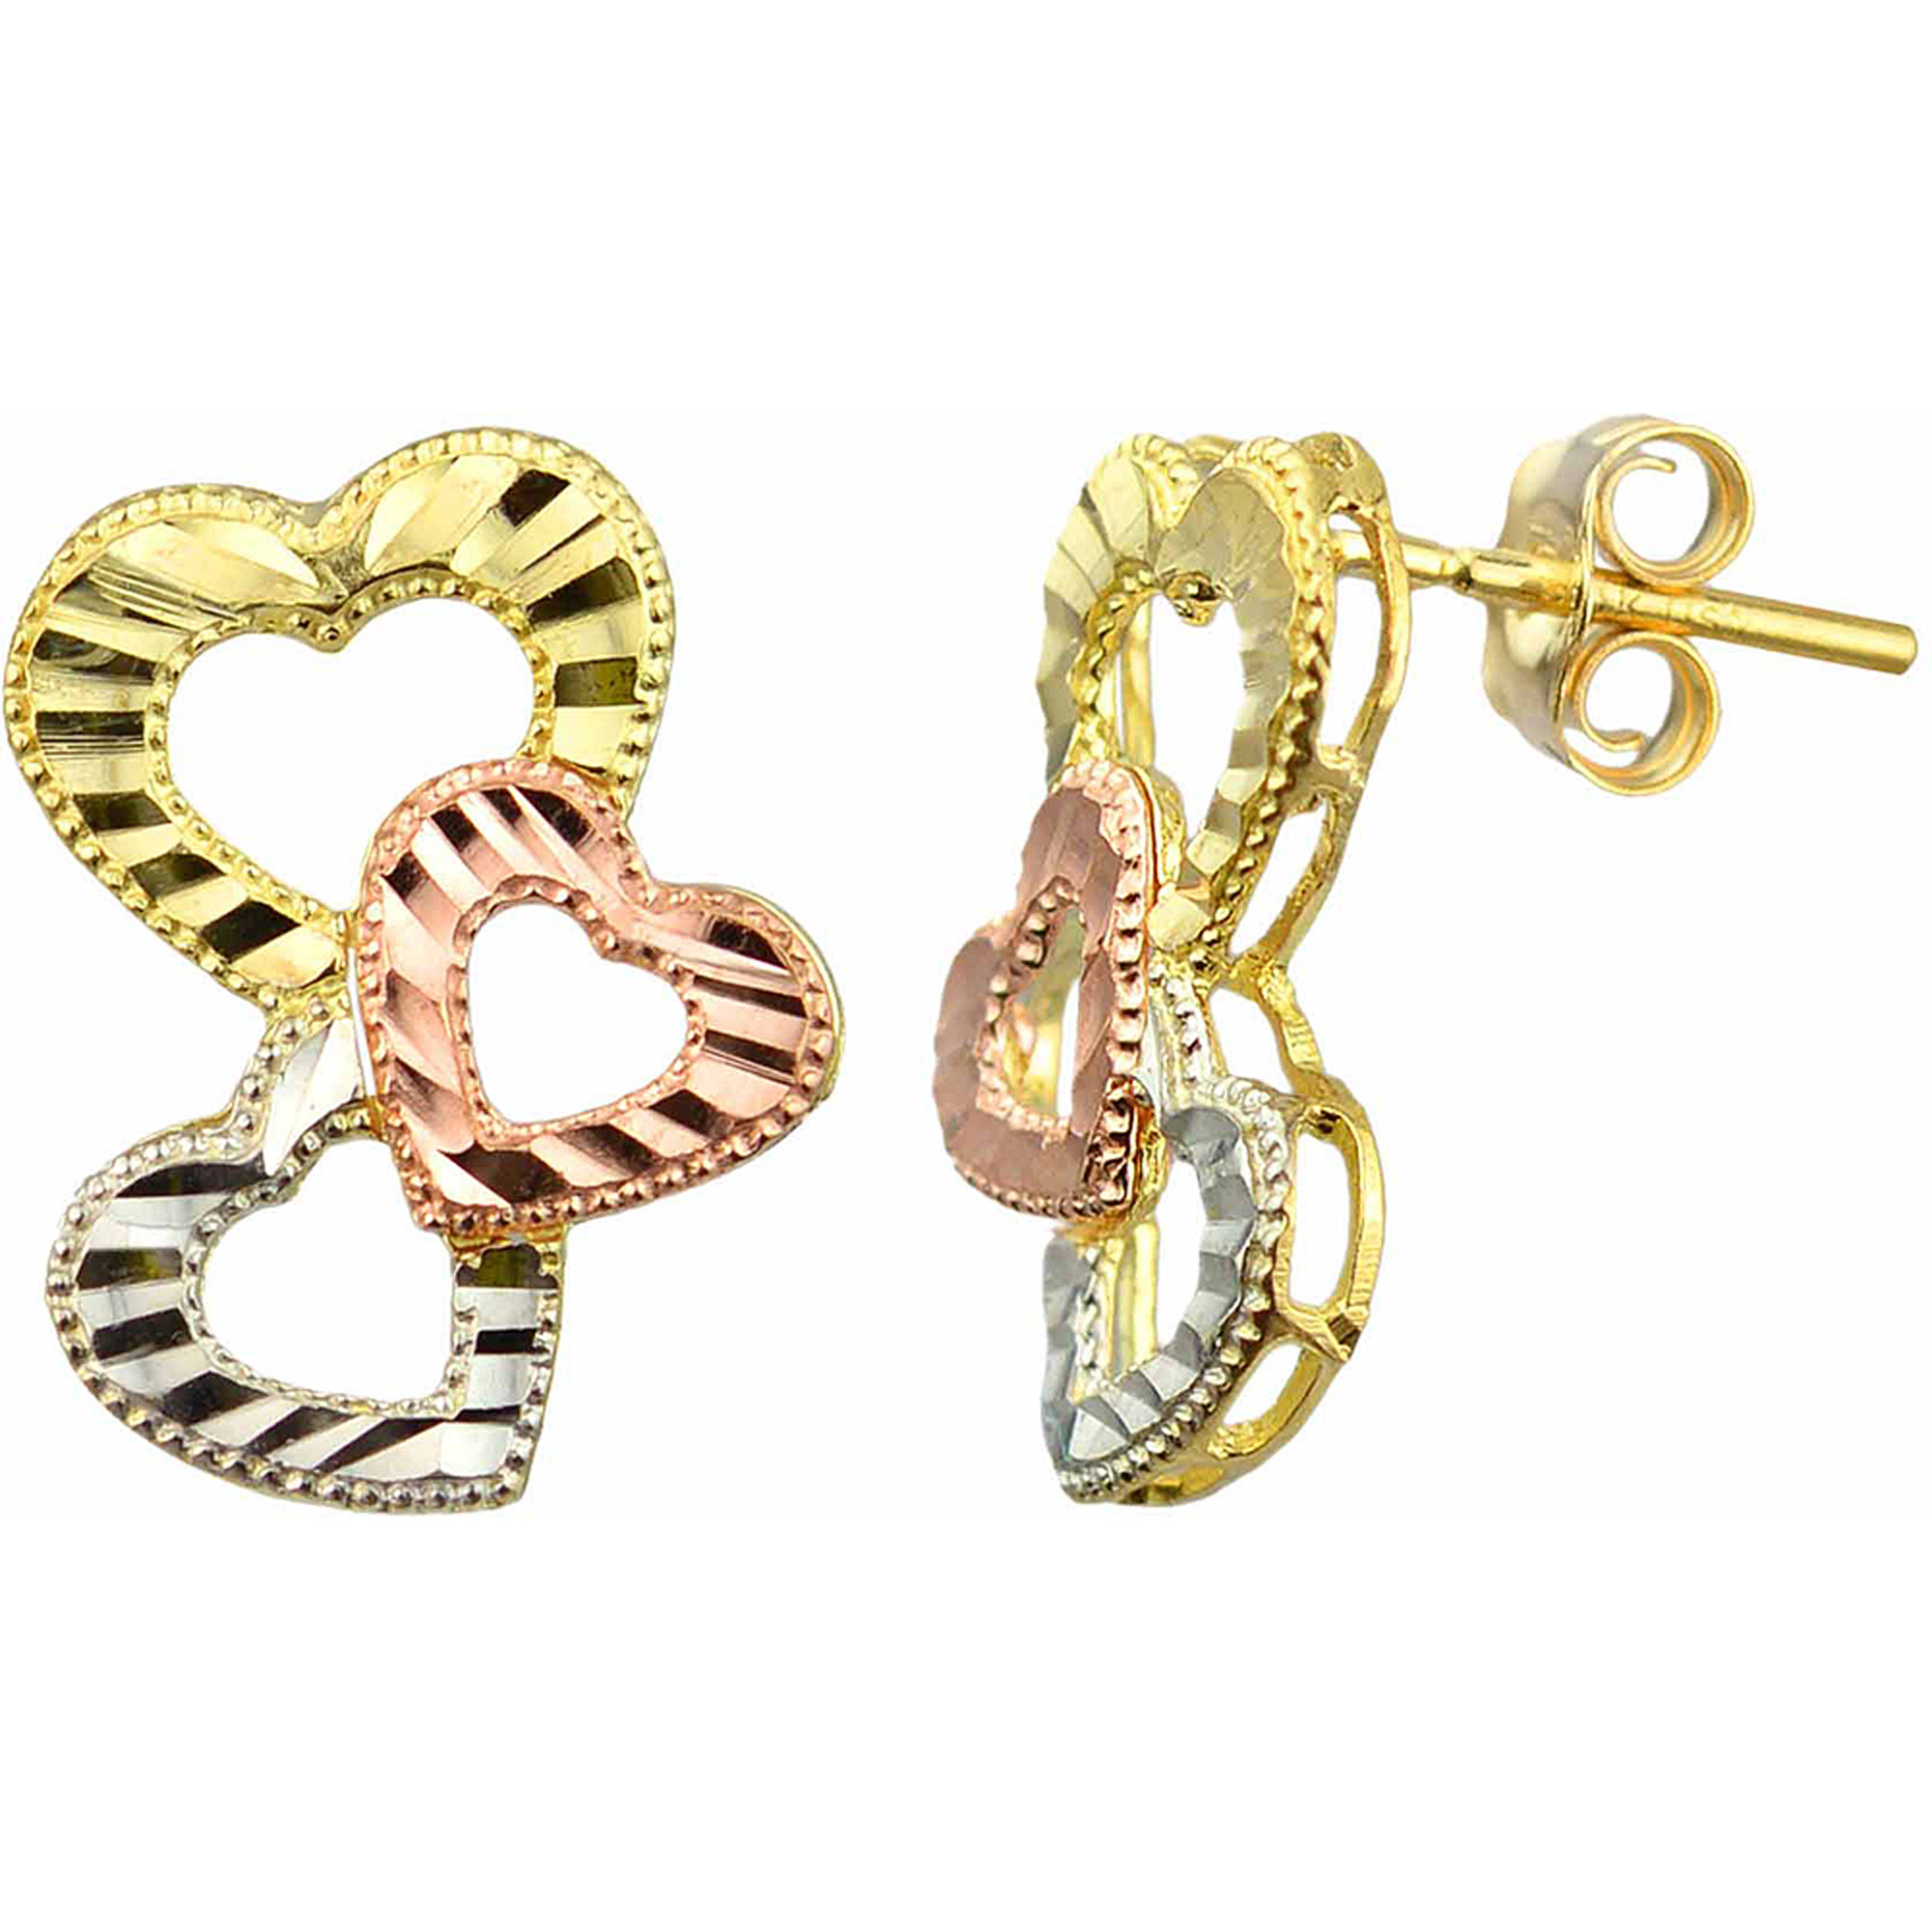 US GOLD 10kt Gold Tri-Color Heart Stud Earrings